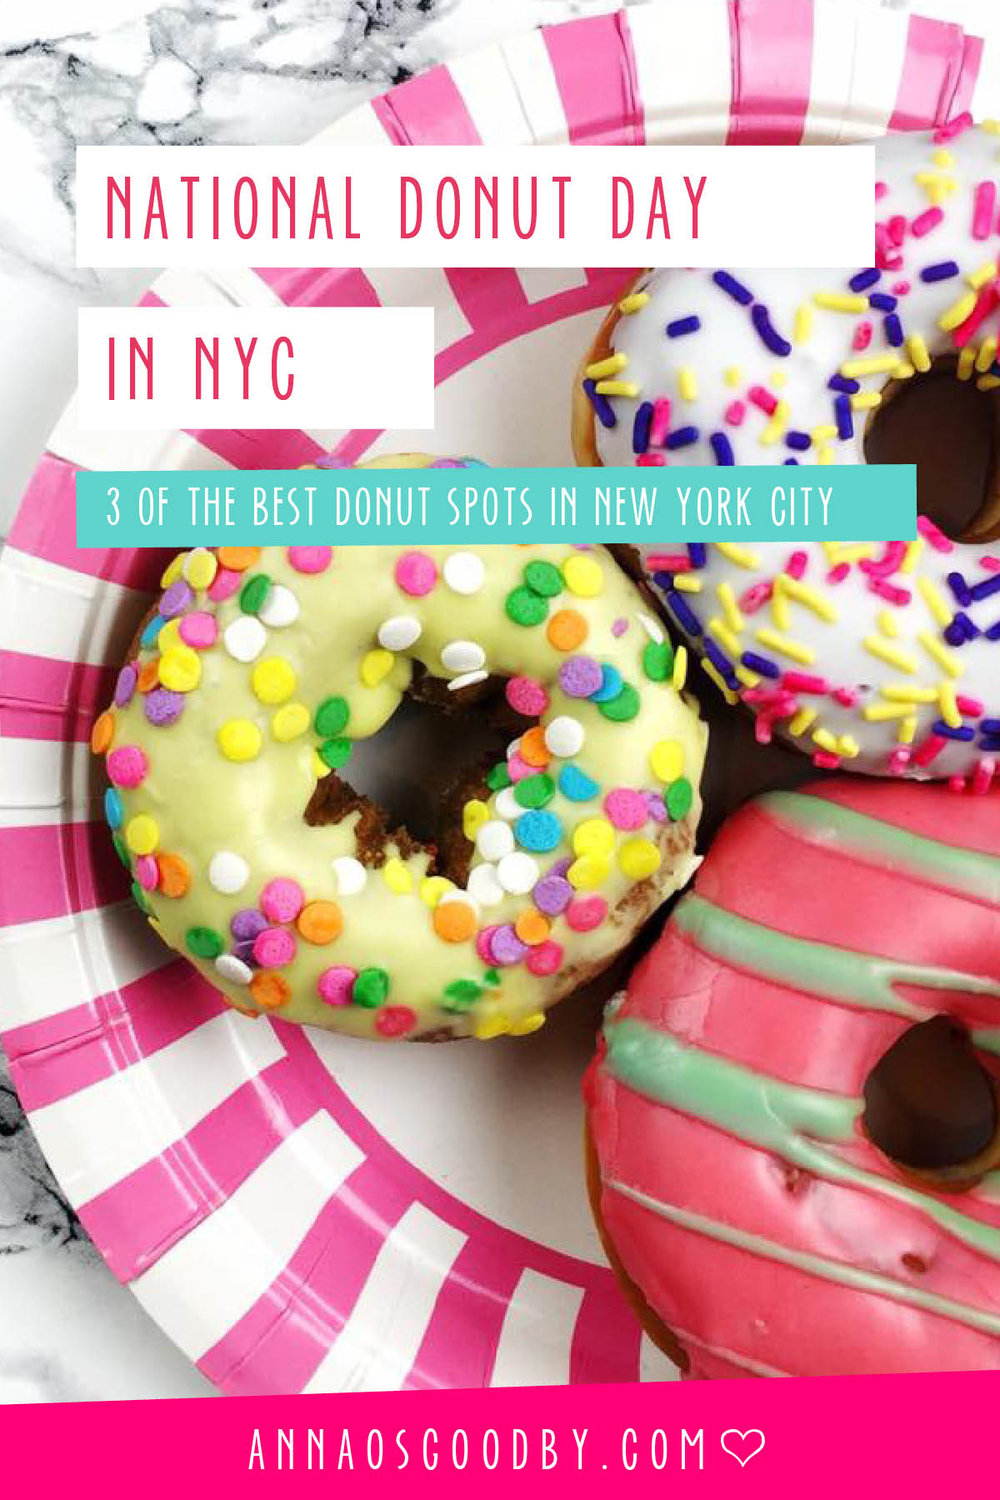 Anna Osgoodby Life + Design :: Celebrate National Donut Day in NYC -- 3 of the best spots for donuts in the city